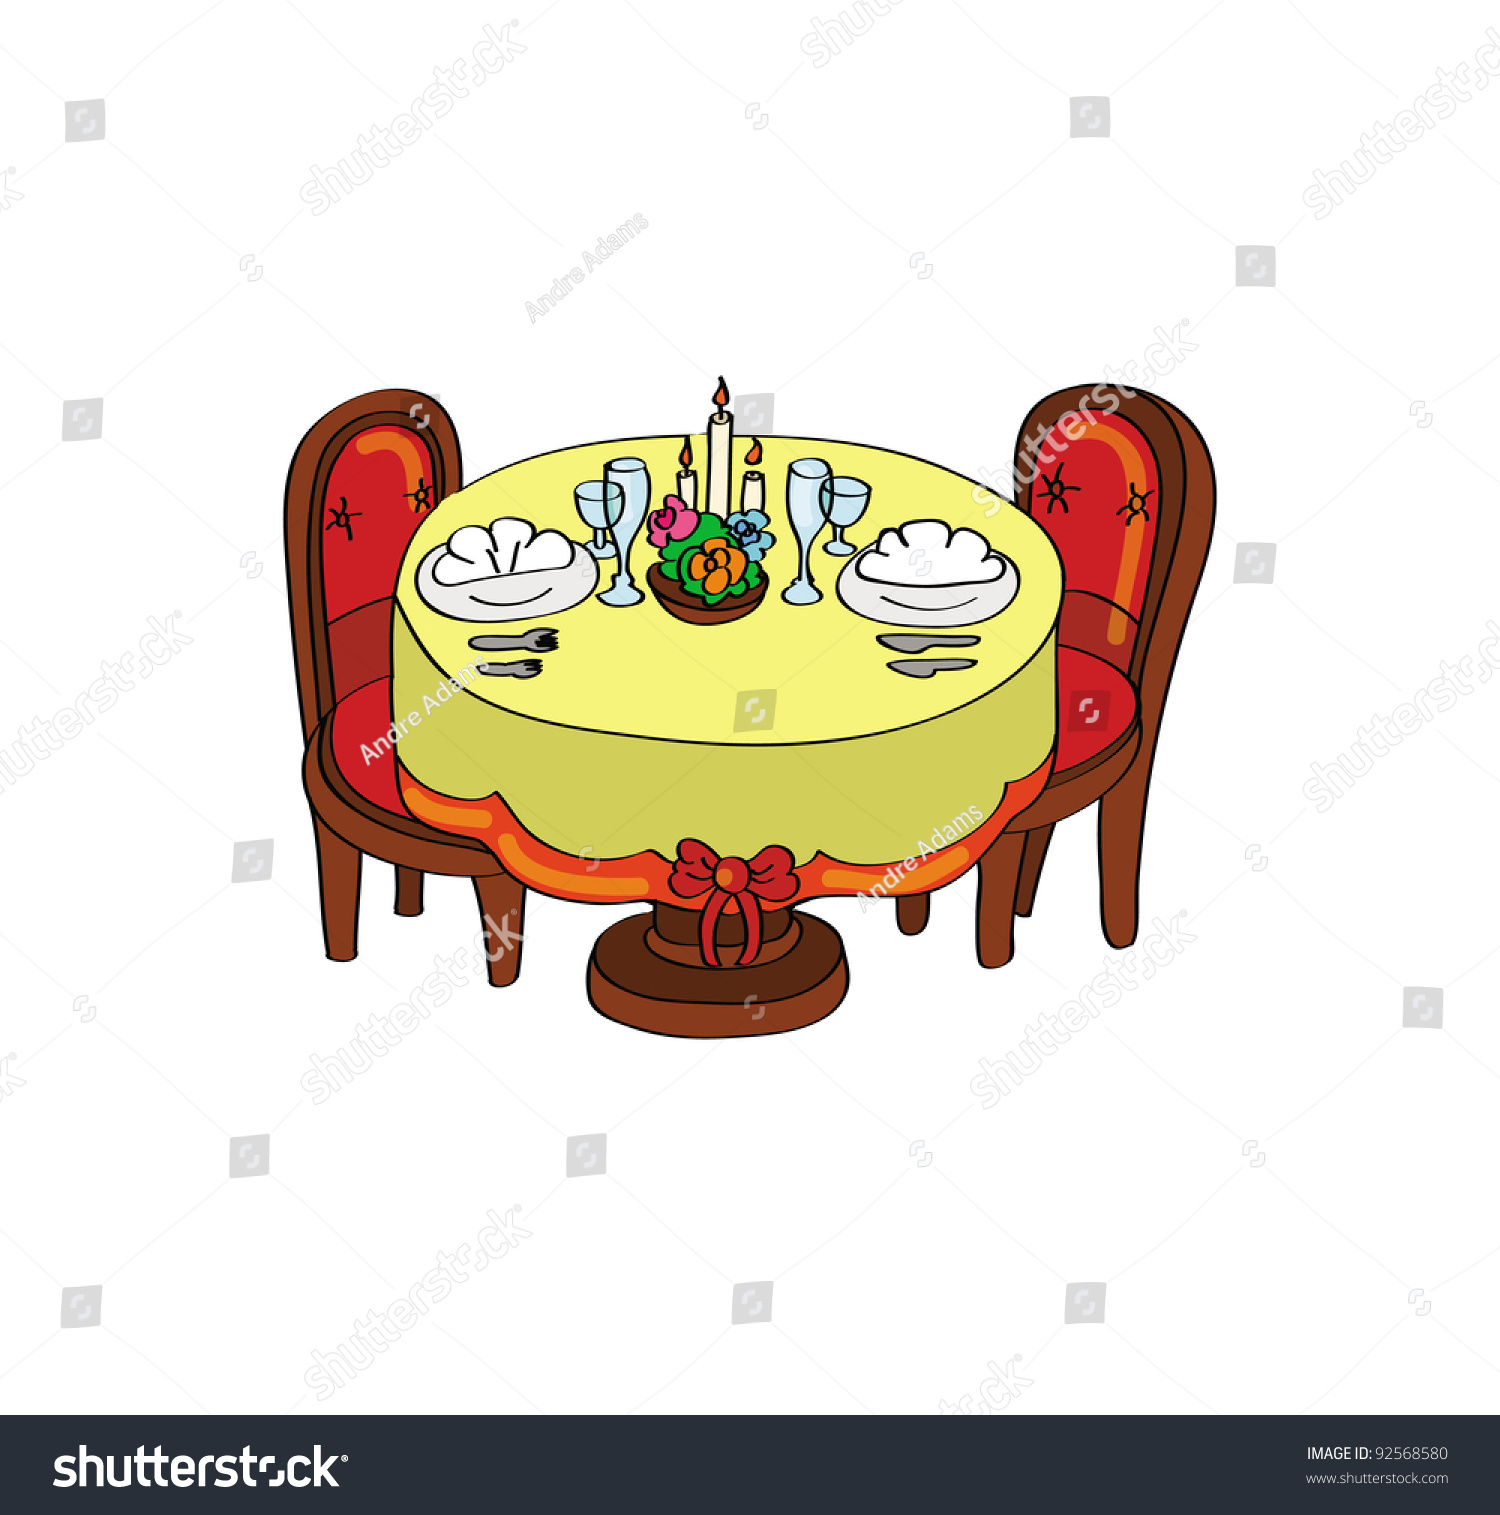 Antiques Round Table Clipart.Brown Table Clipart. 19 Vintage Table ...